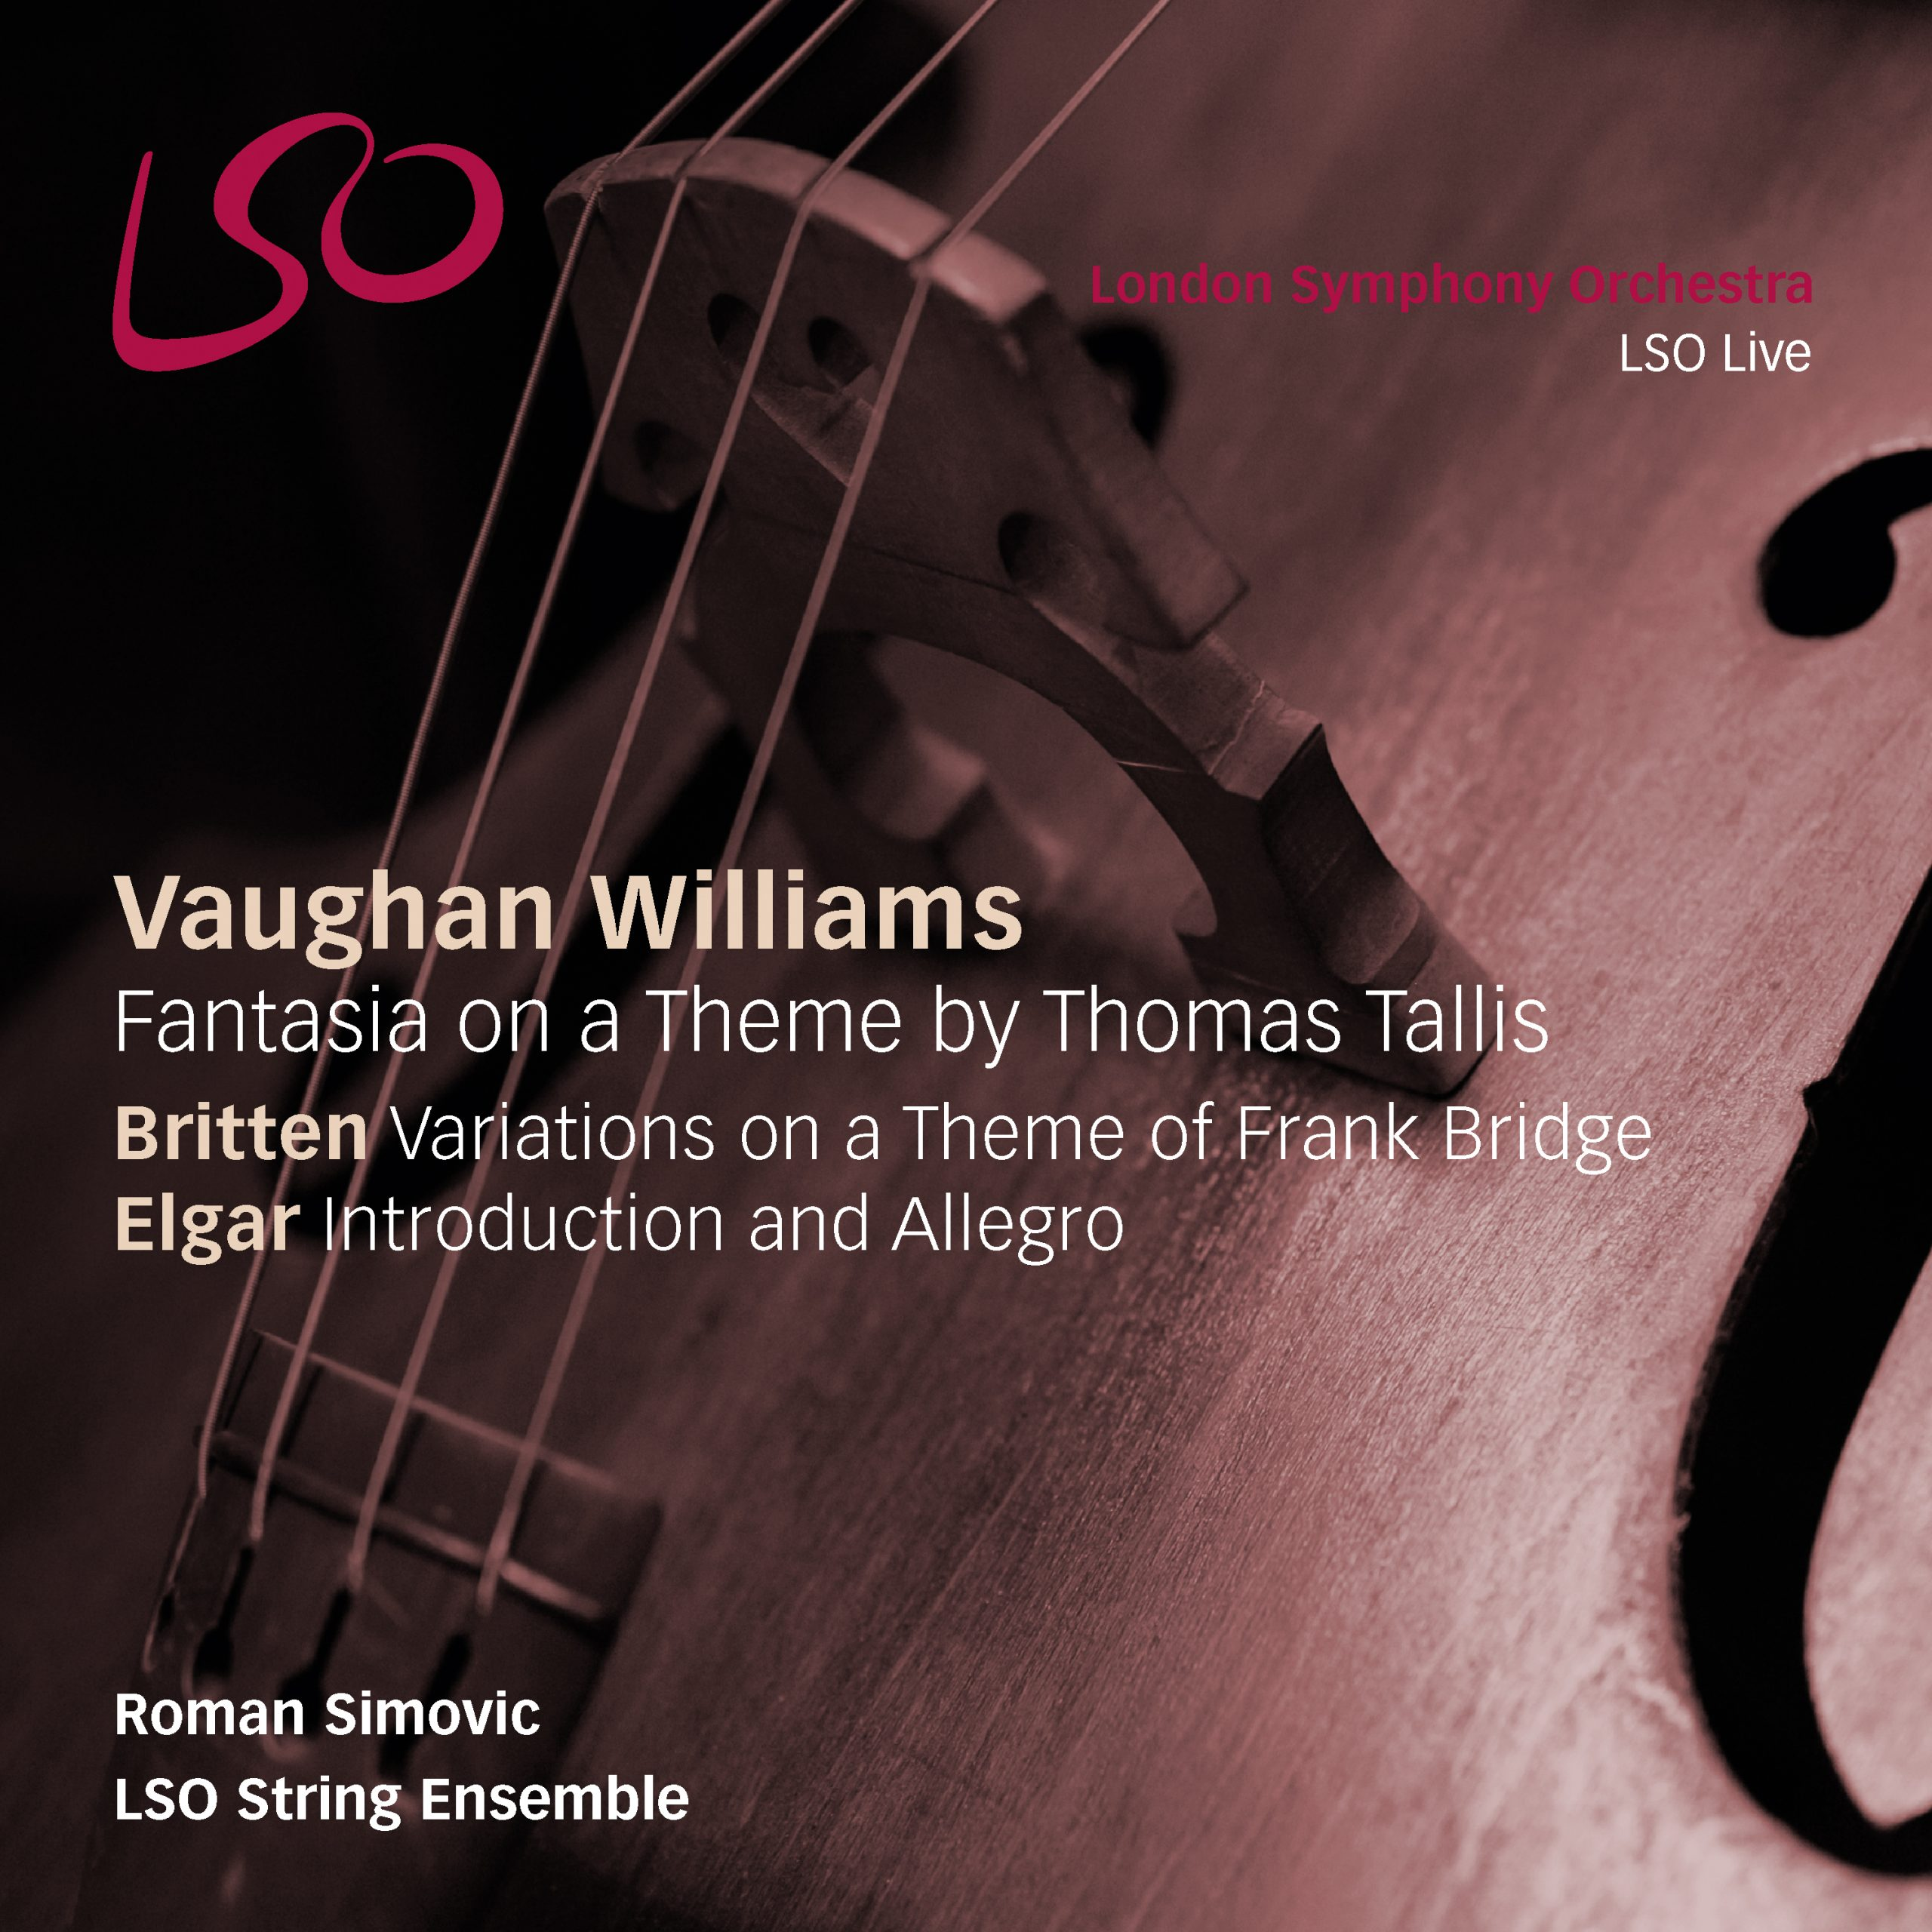 Vaughan Williams Fantasia On A Theme By Thomas Tallis Britten Variations On A Theme Of Frank Bridge Nativedsd Music